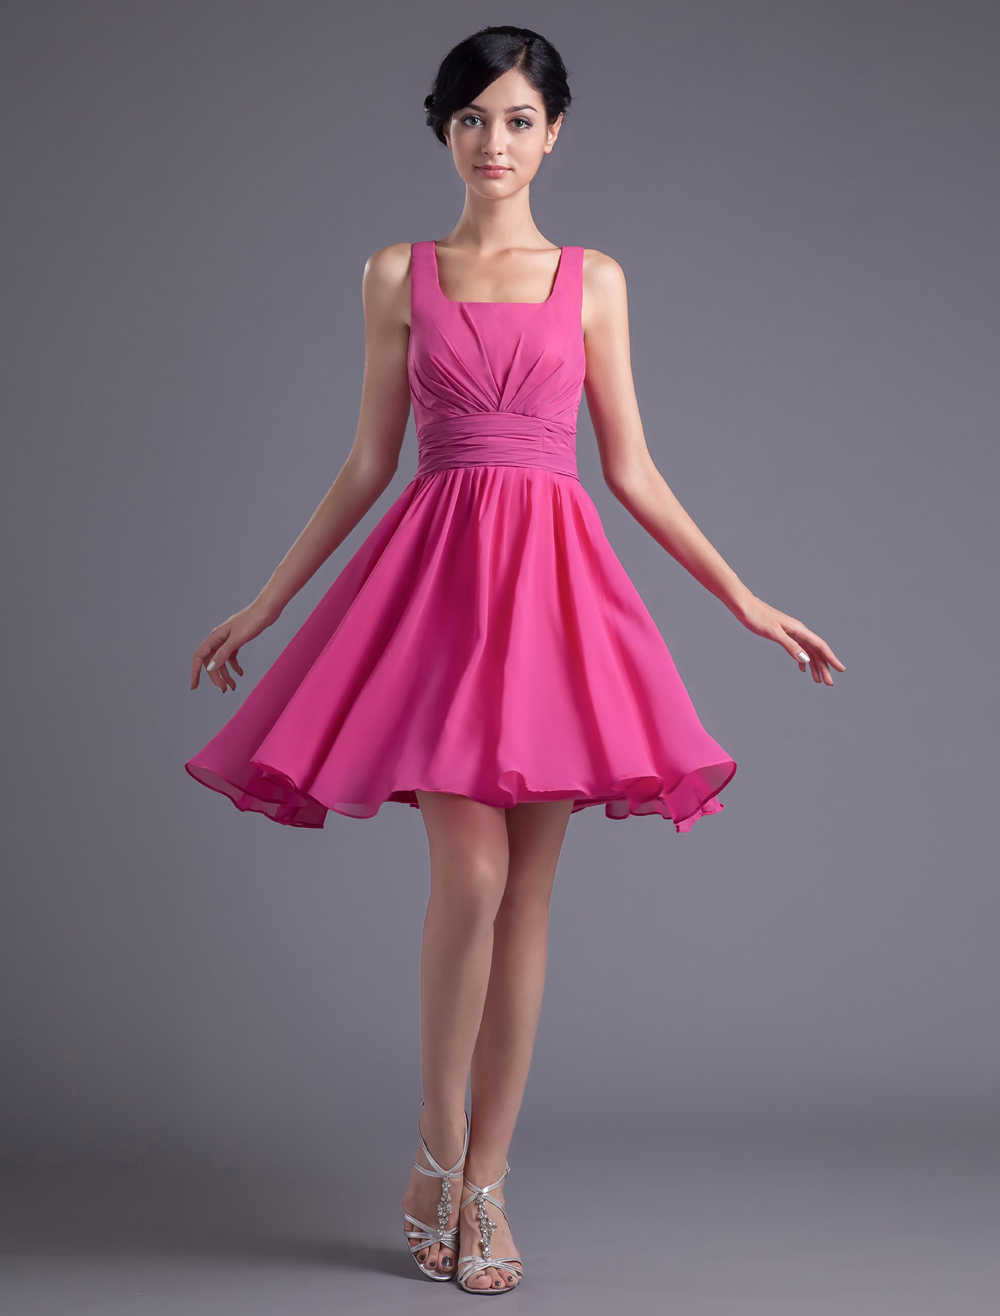 A-line Fuchsia Chiffon Zipper Knee-Length Bridesmaid Dress For Wedding